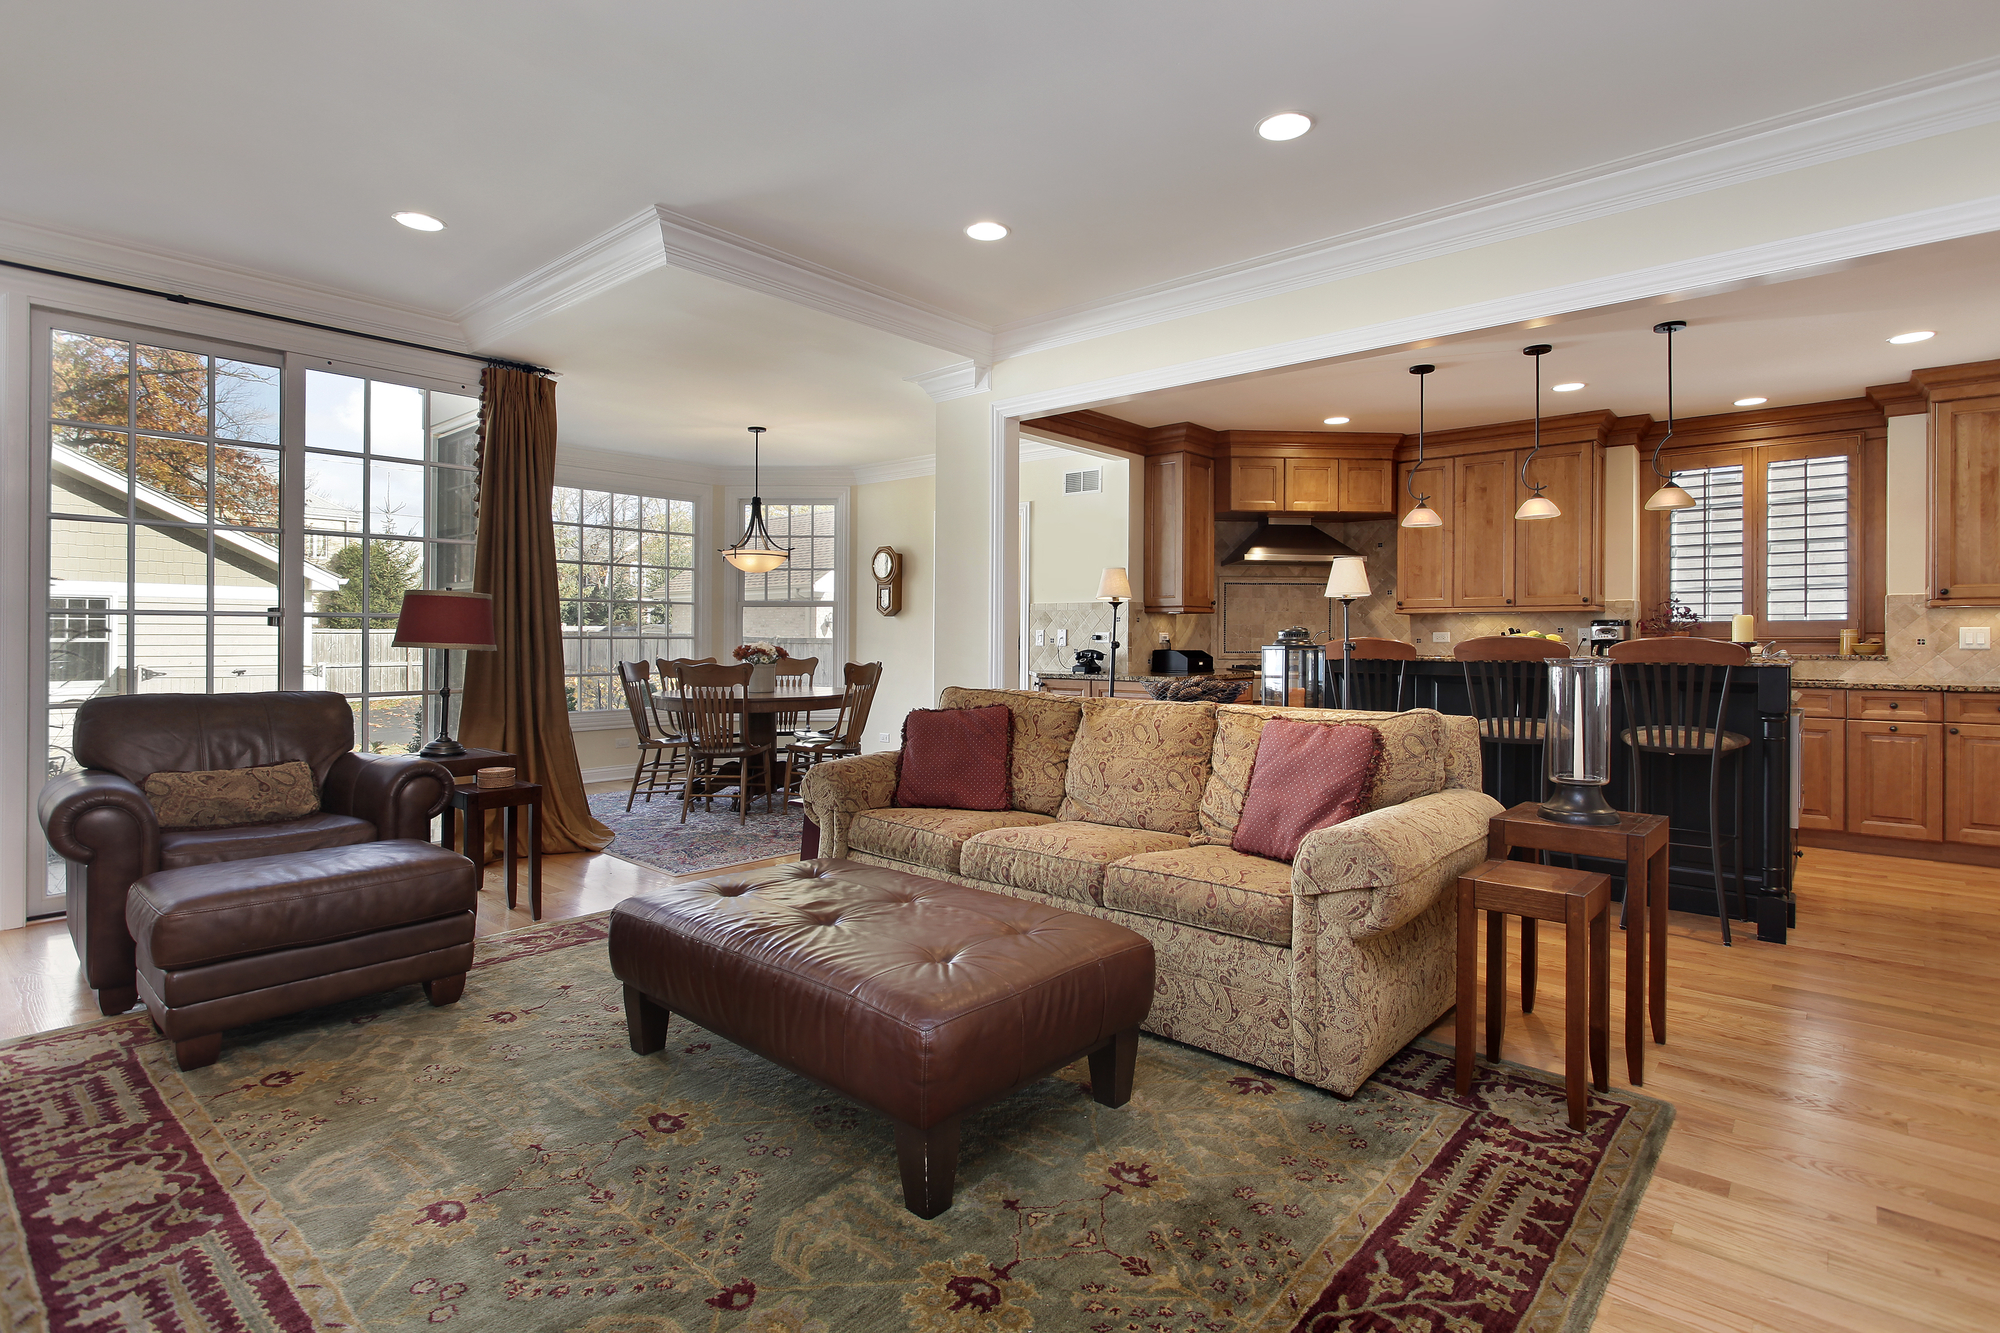 How To Use Area Rugs To Improve Your Home Interior Persian